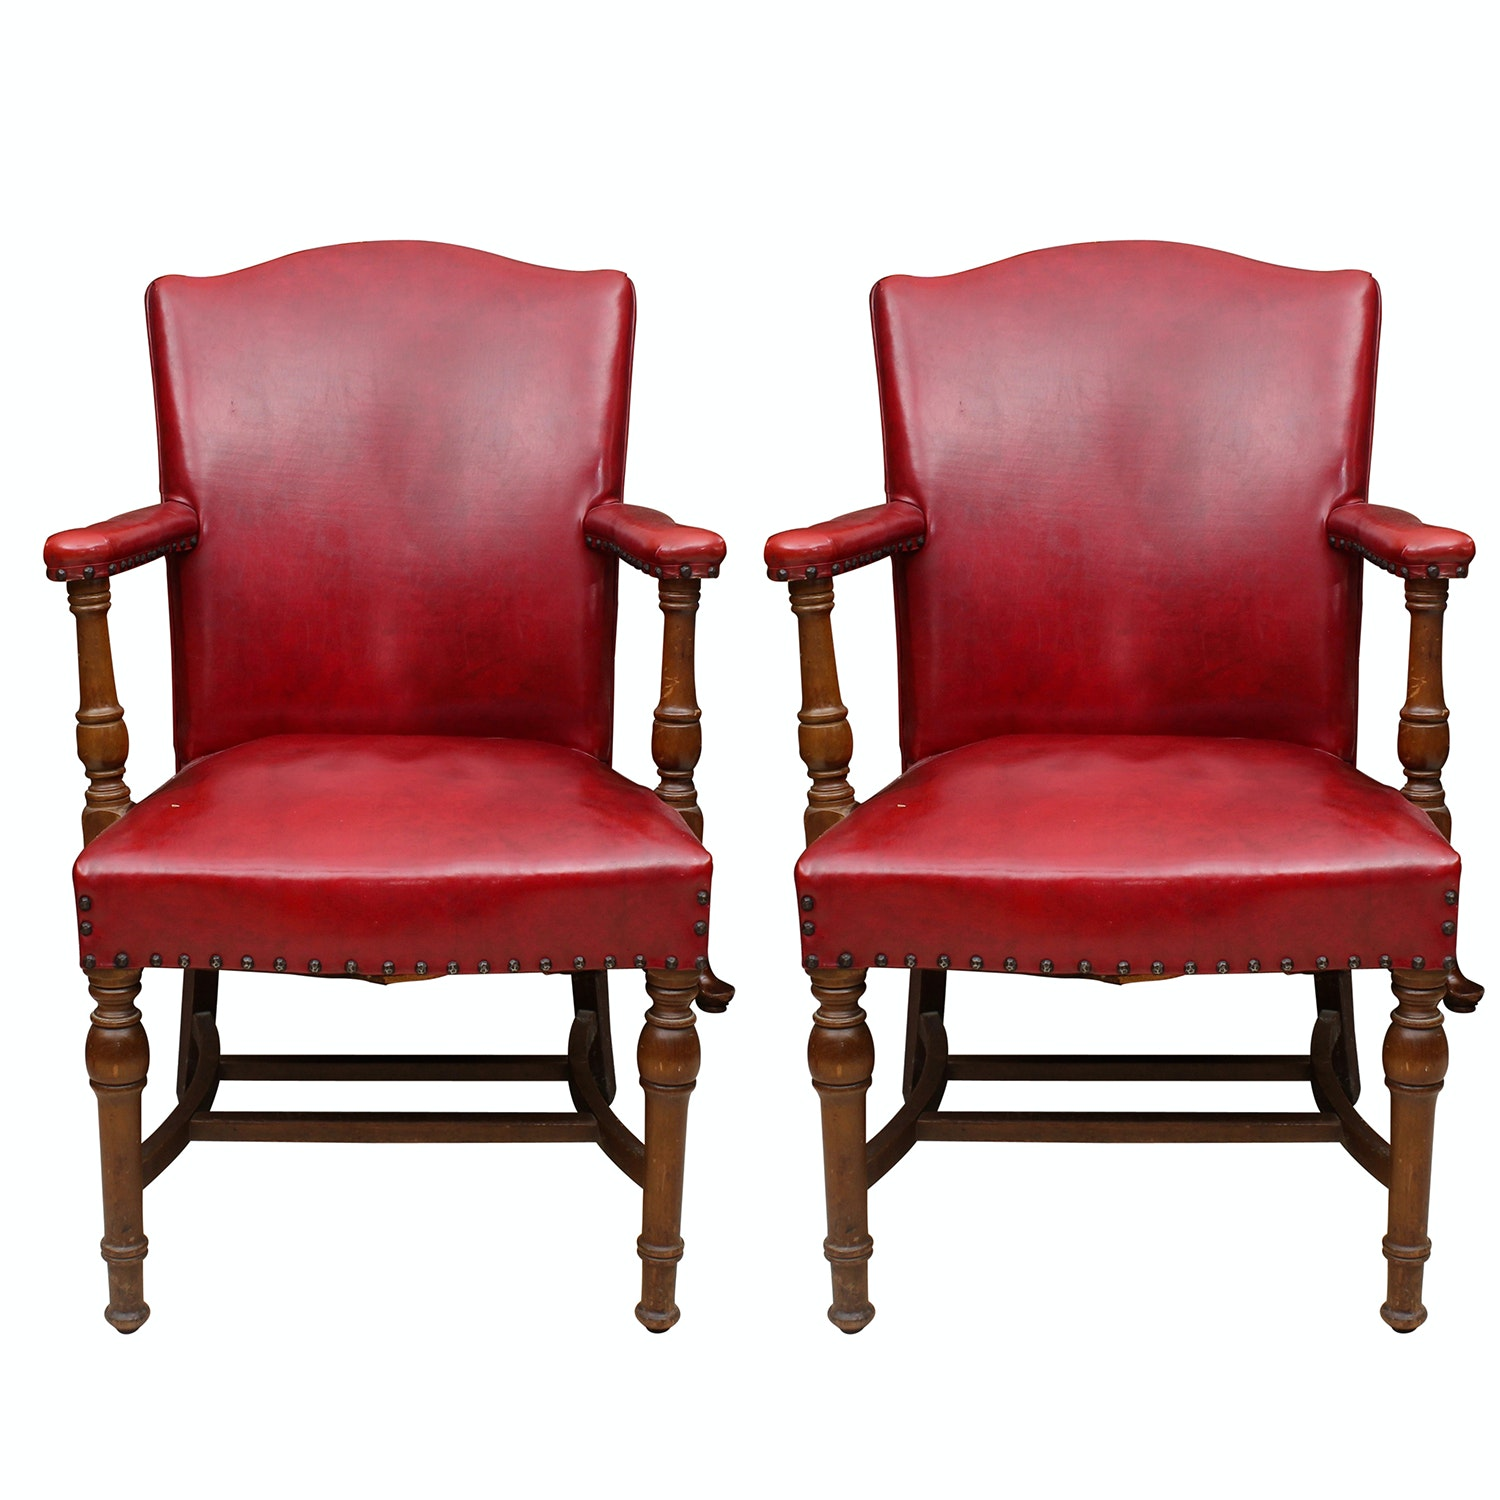 Vintage Red Naugahyde Armchairs